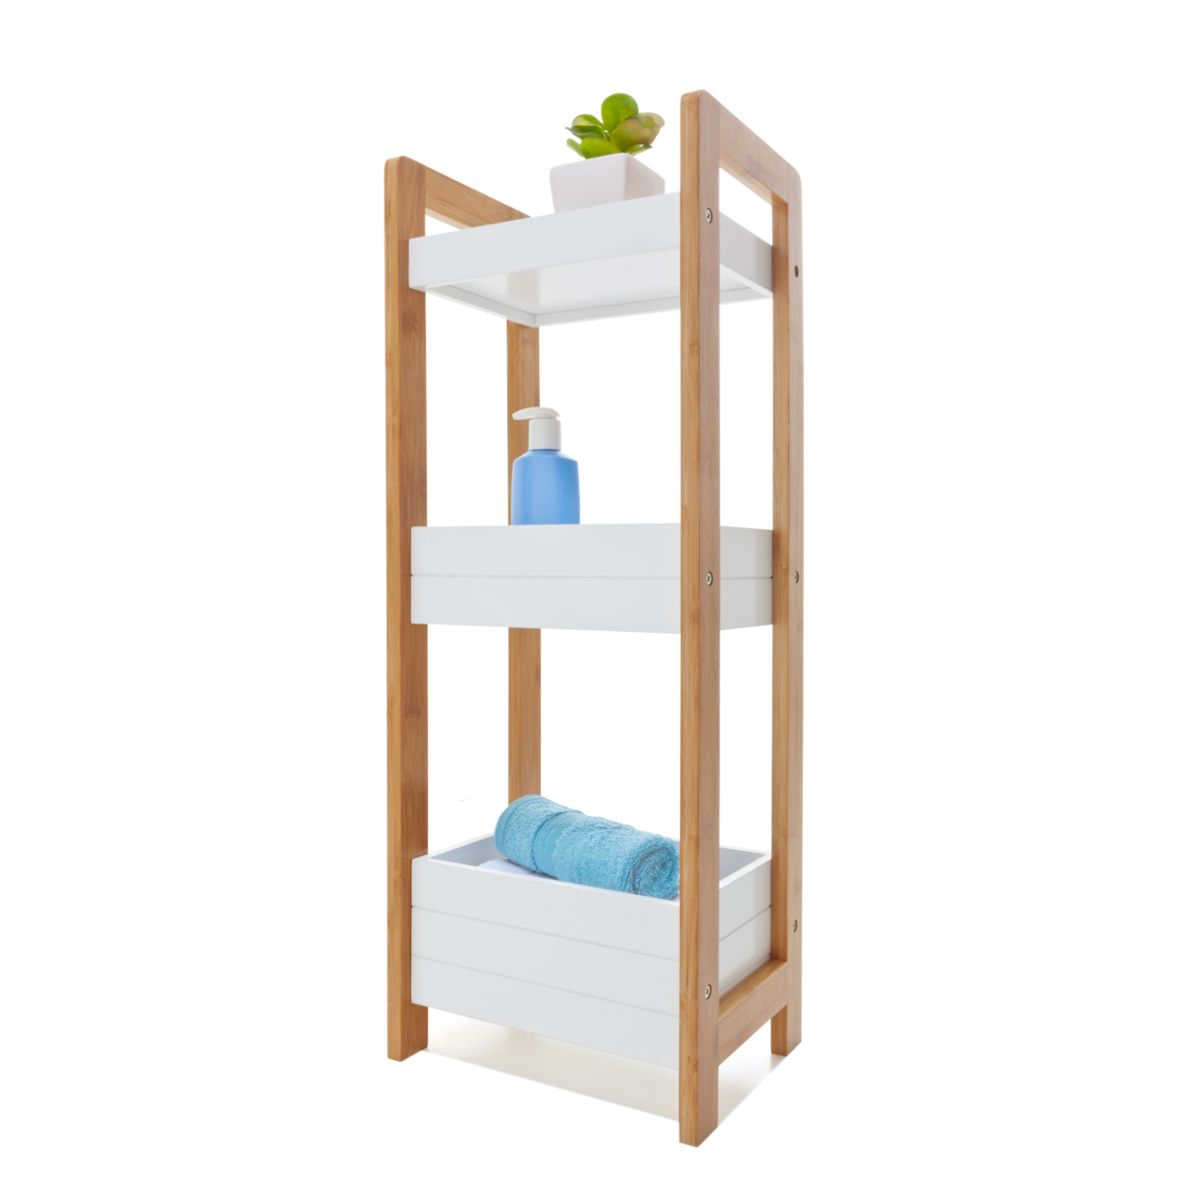 3 Tier Bathroom Caddy Kmartnz Bathroom Caddy Bathroom Storing Towels